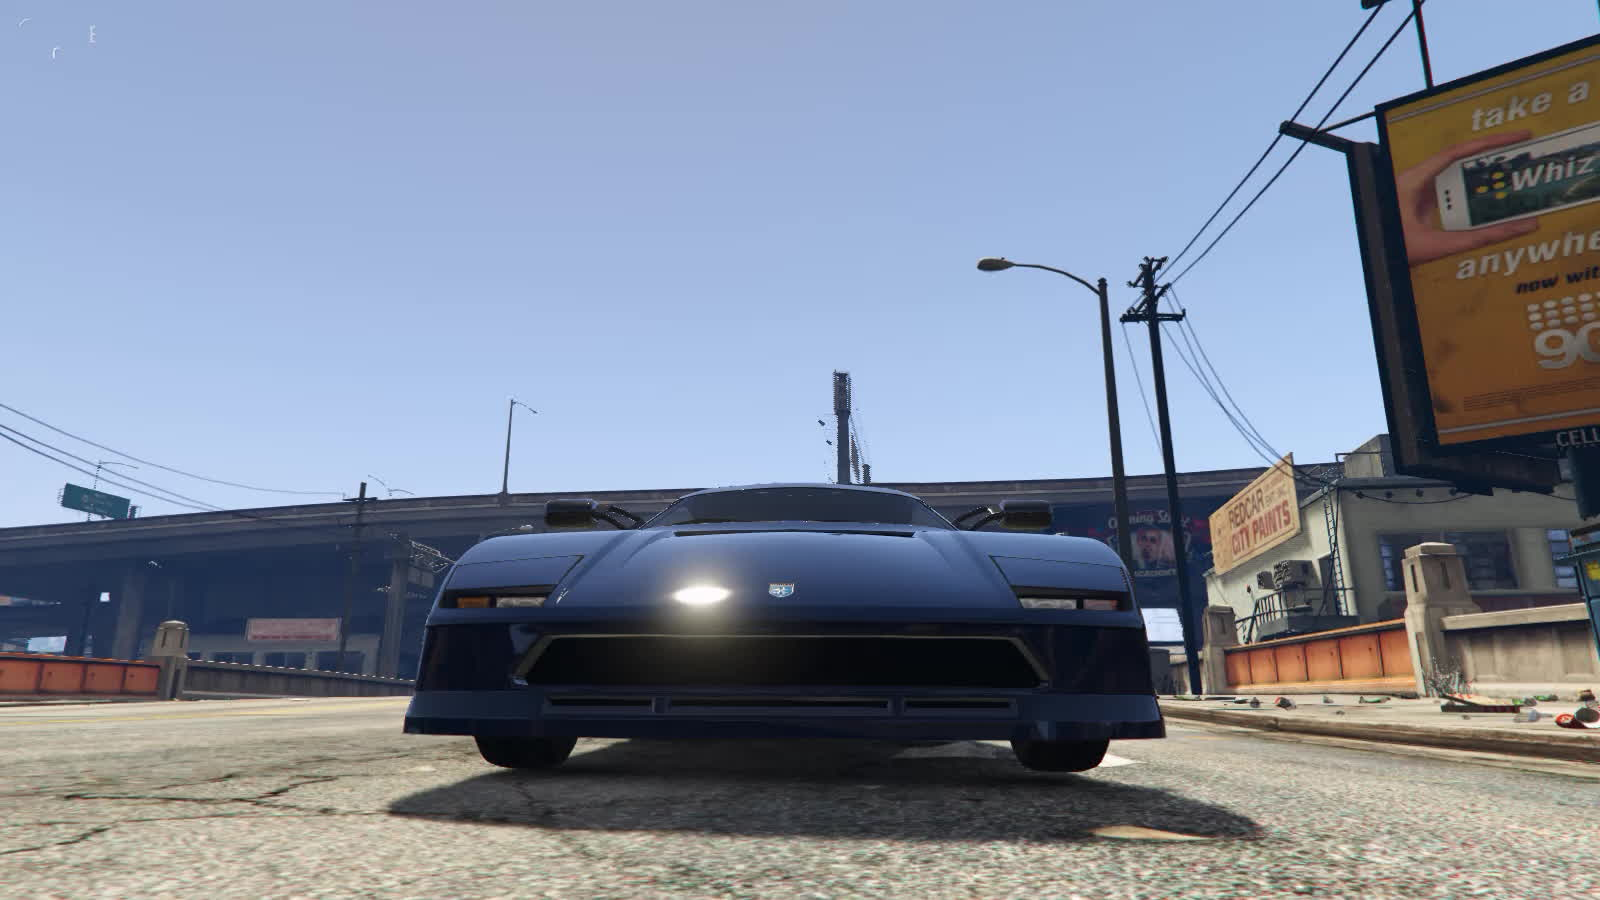 gtaonline, Why is the Turismo Classic so sad? GIFs